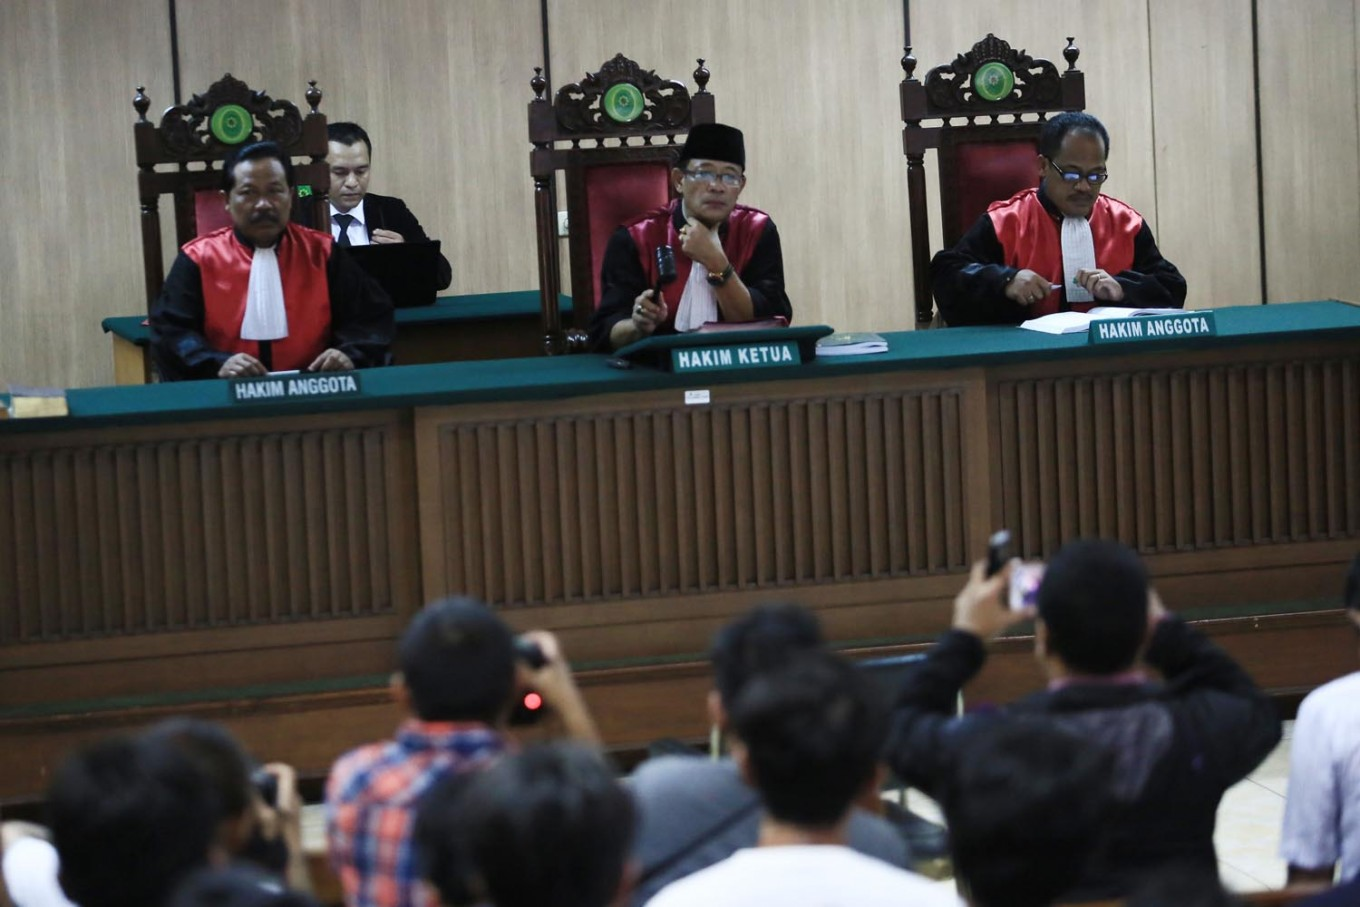 Supreme Court to prioritize Ahok case review: Official